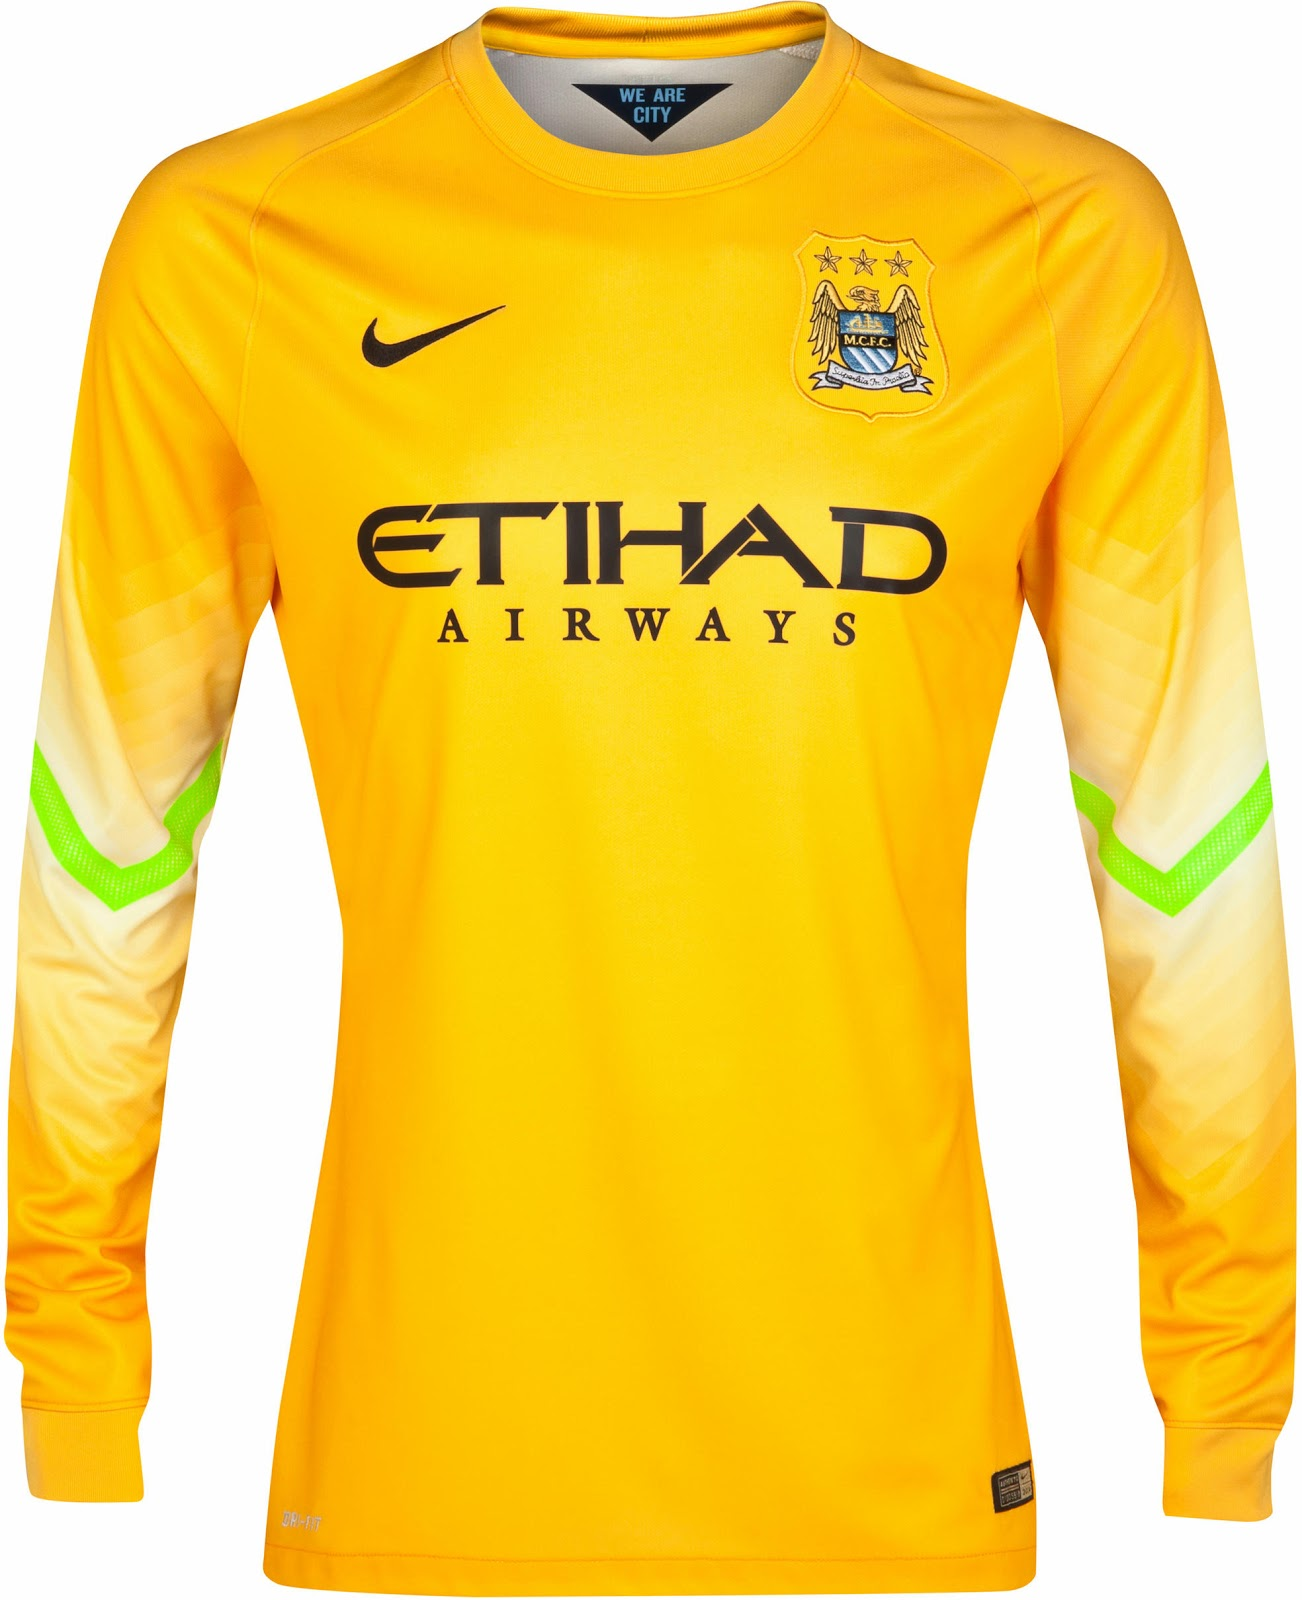 footy news new manchester city 14 15 kits. Black Bedroom Furniture Sets. Home Design Ideas